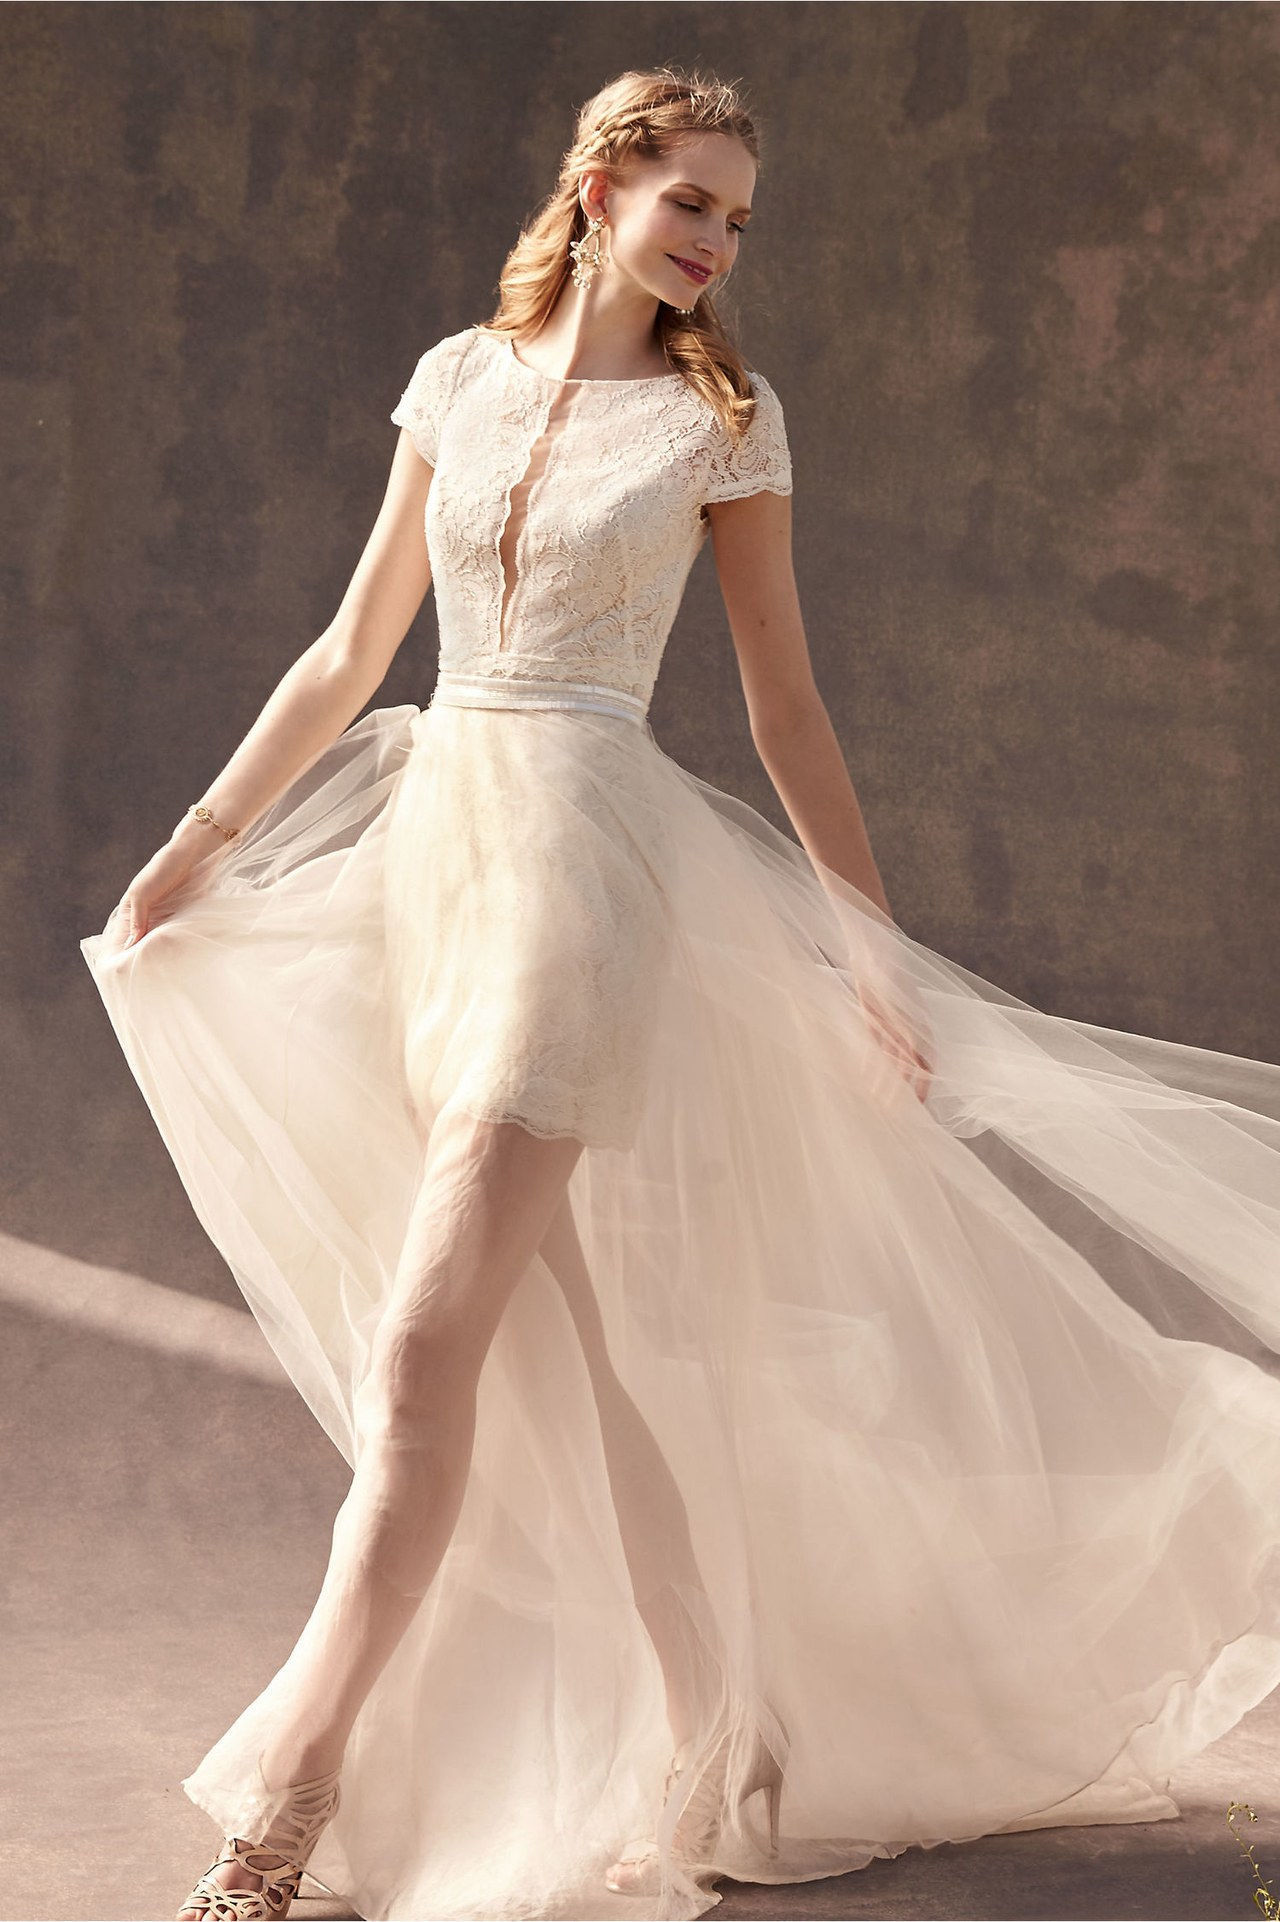 1 2 in 1 wedding dresses wedding gowns mix and match wedding dresses bhldn 0430 courtesy